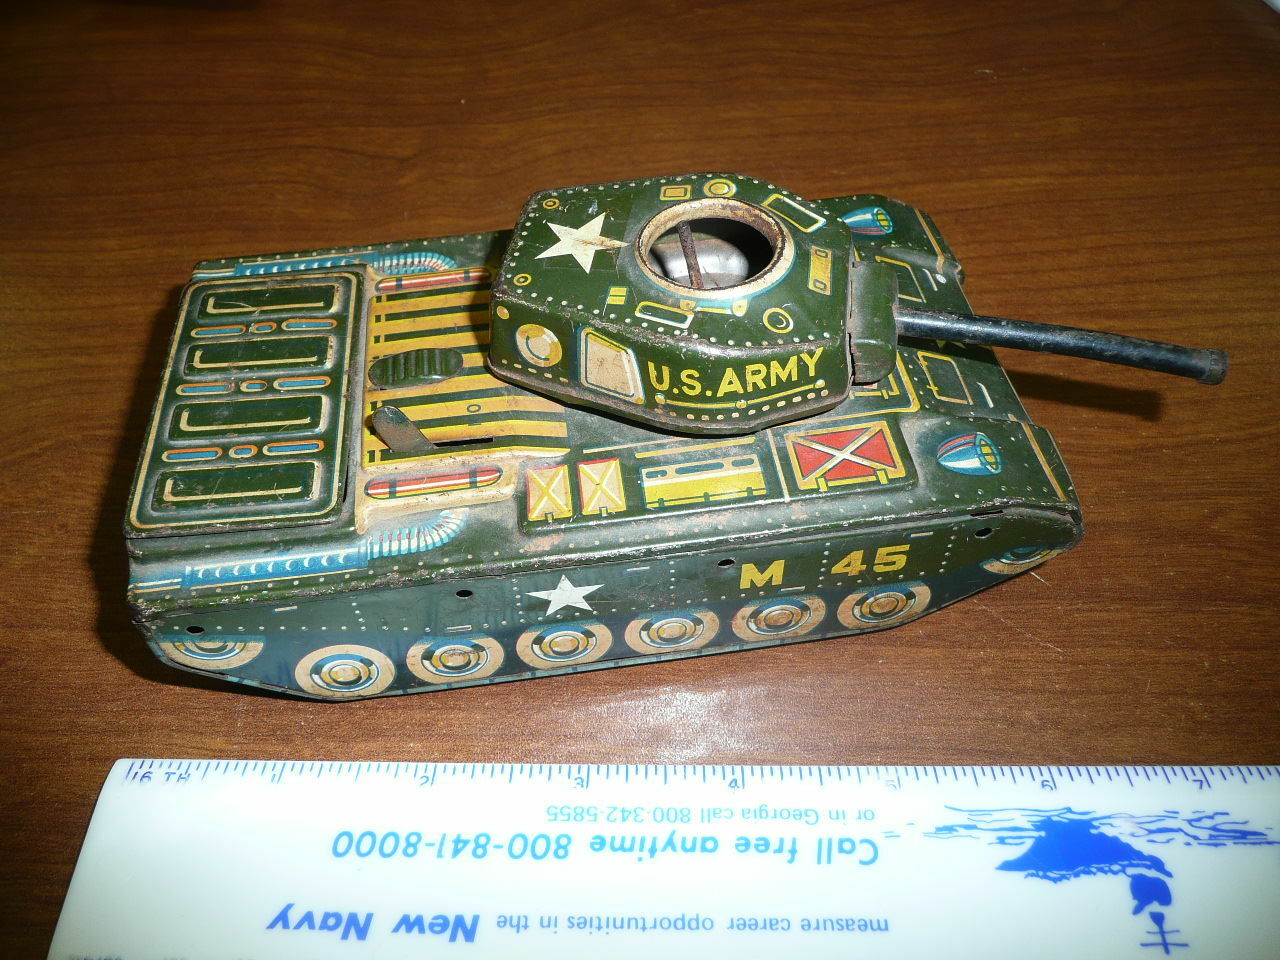 US METAL M-45 ARMY TANK  NOT WORKING --battery operated